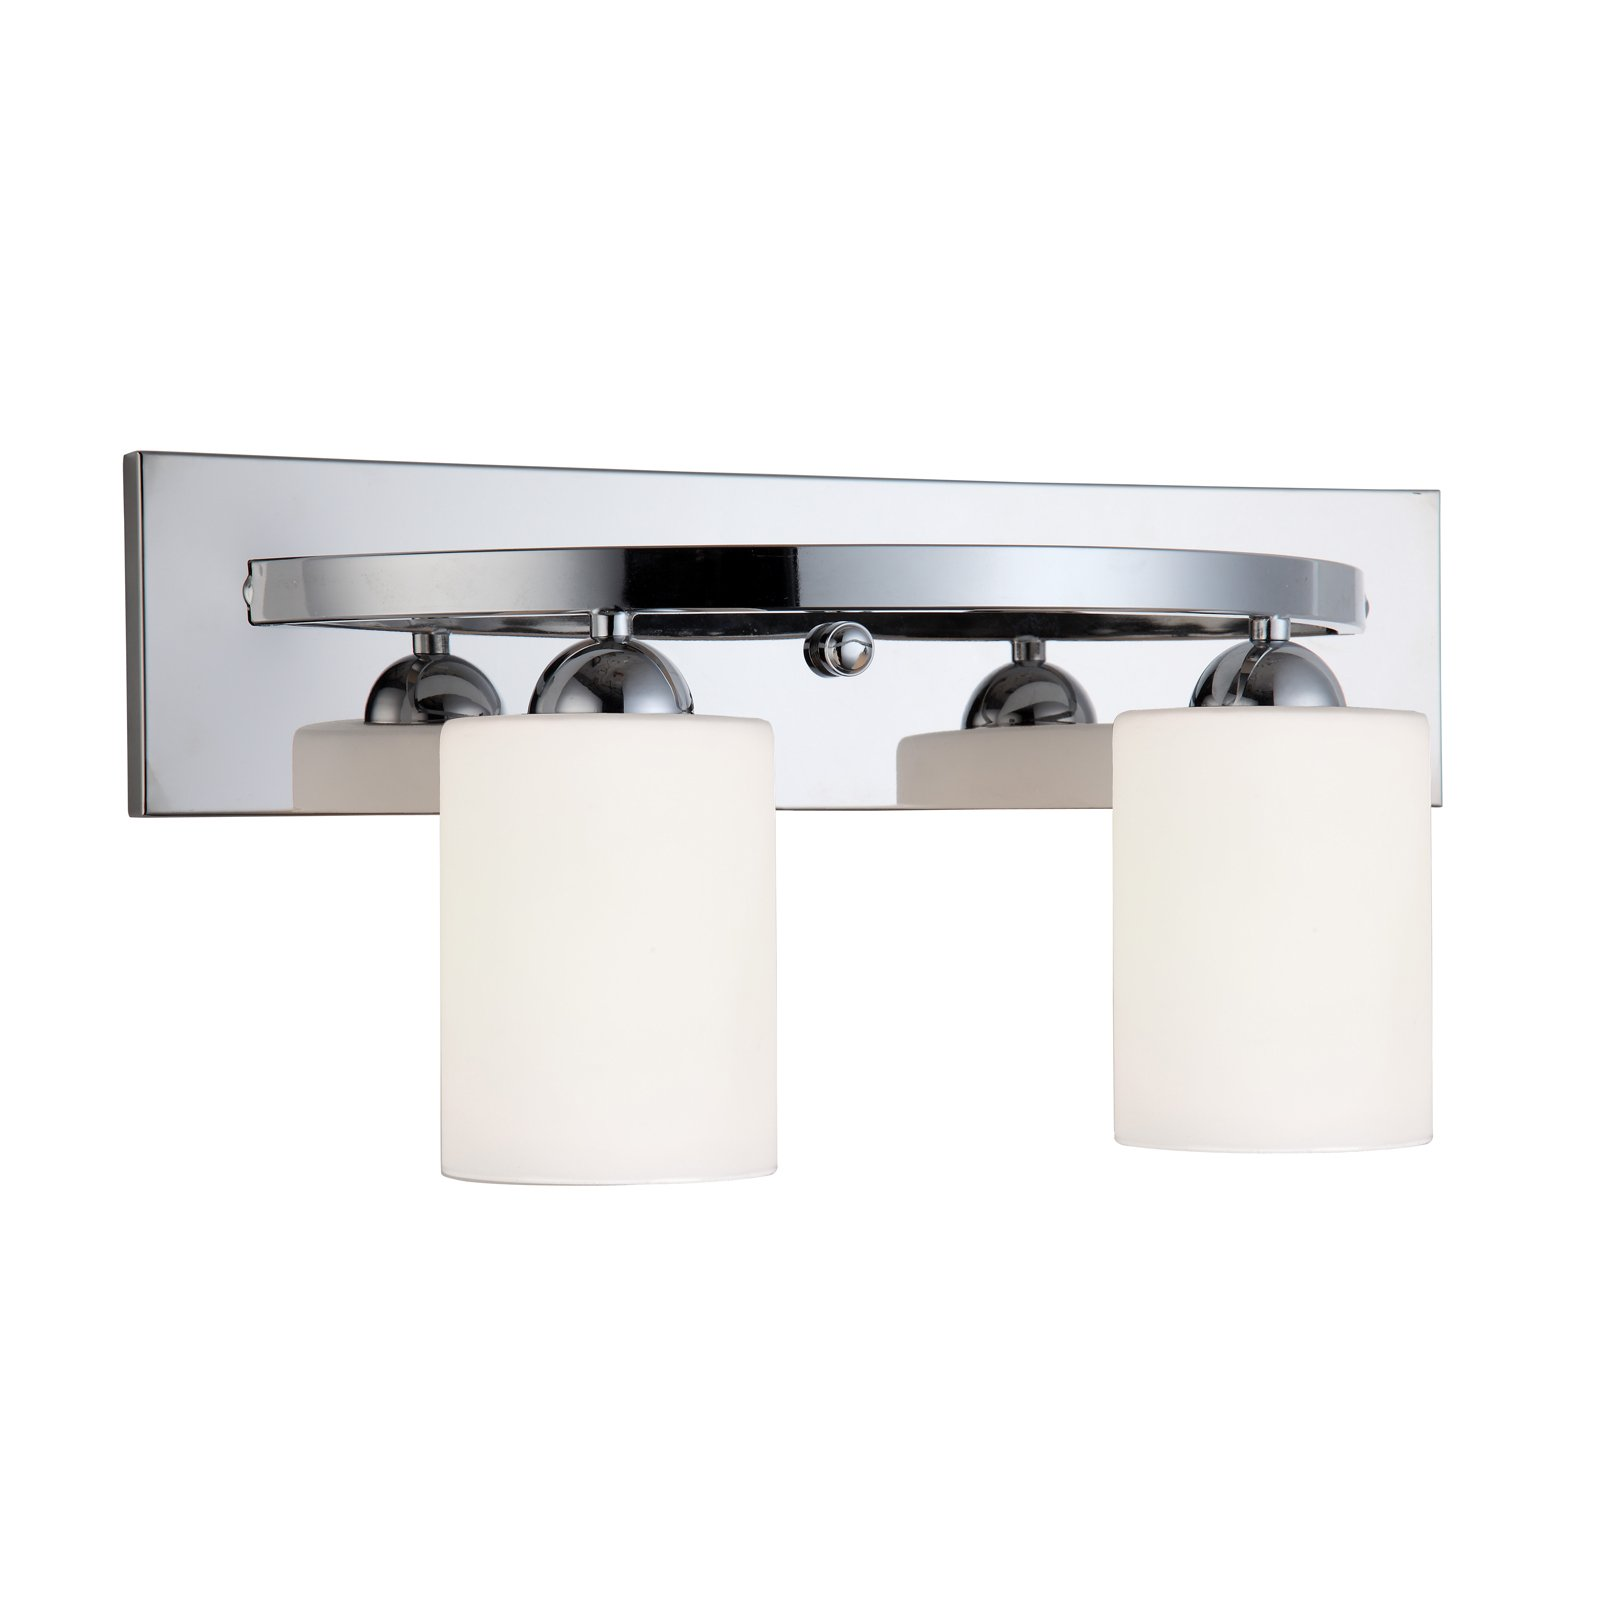 Chrome 2 Globe Vanity Bath Light Bar Interior Lighting Fixture by HowPlumb (Image #2)